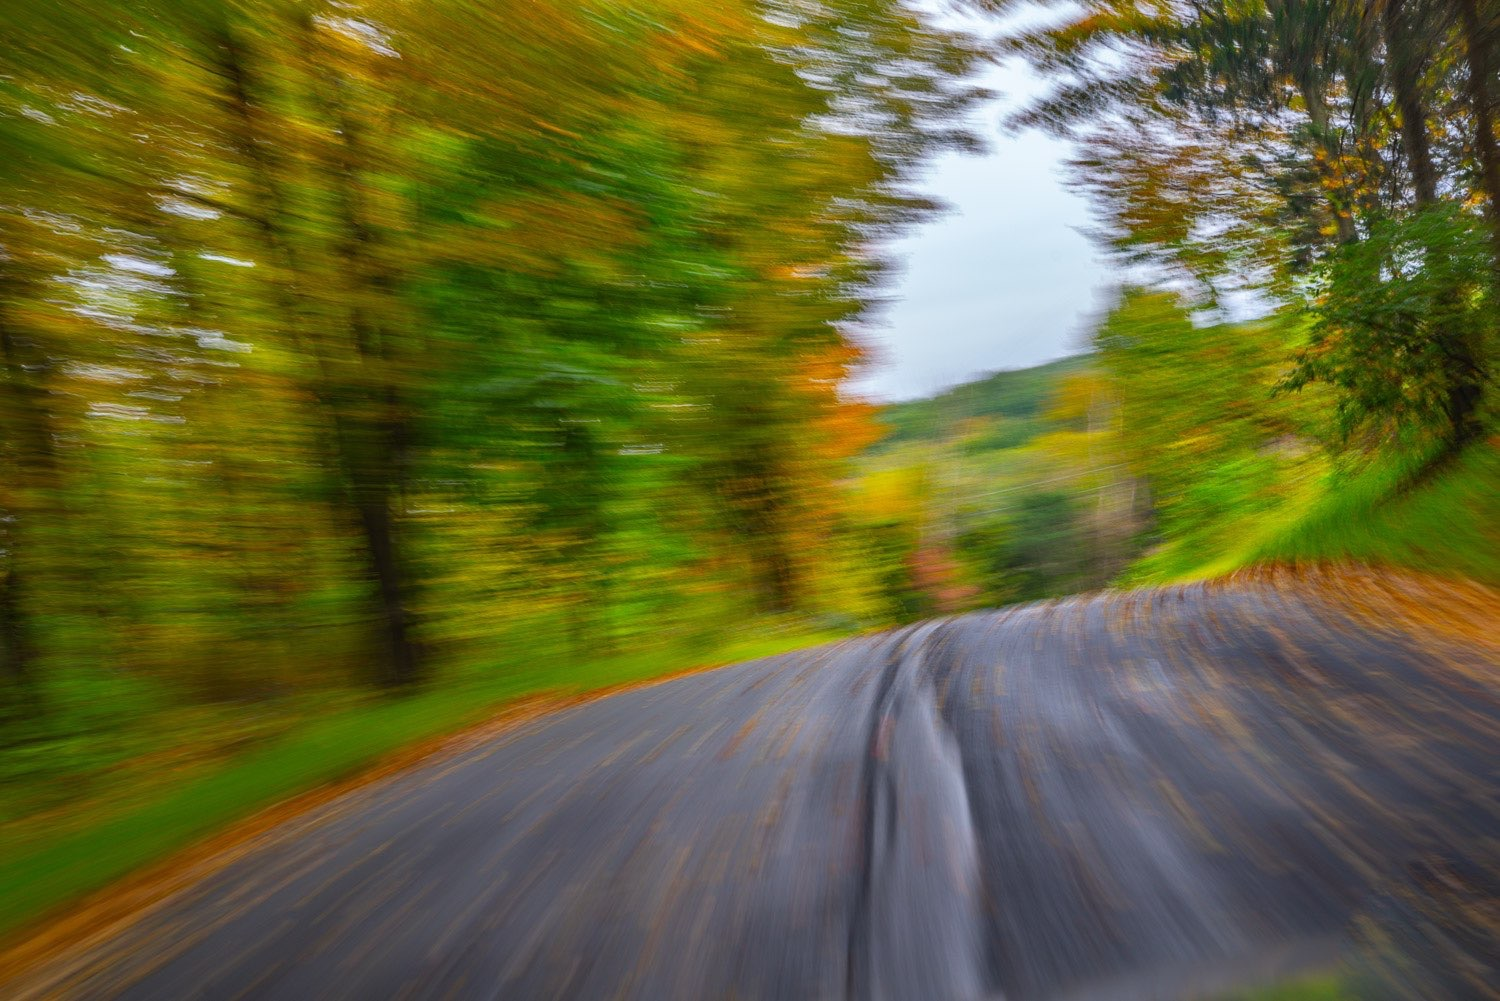 Fall colors blend together as the camera moves during the exposure.  Speed , color and motion amplify a palate provided by nature. photo johnstuartstudio-compress.jpg